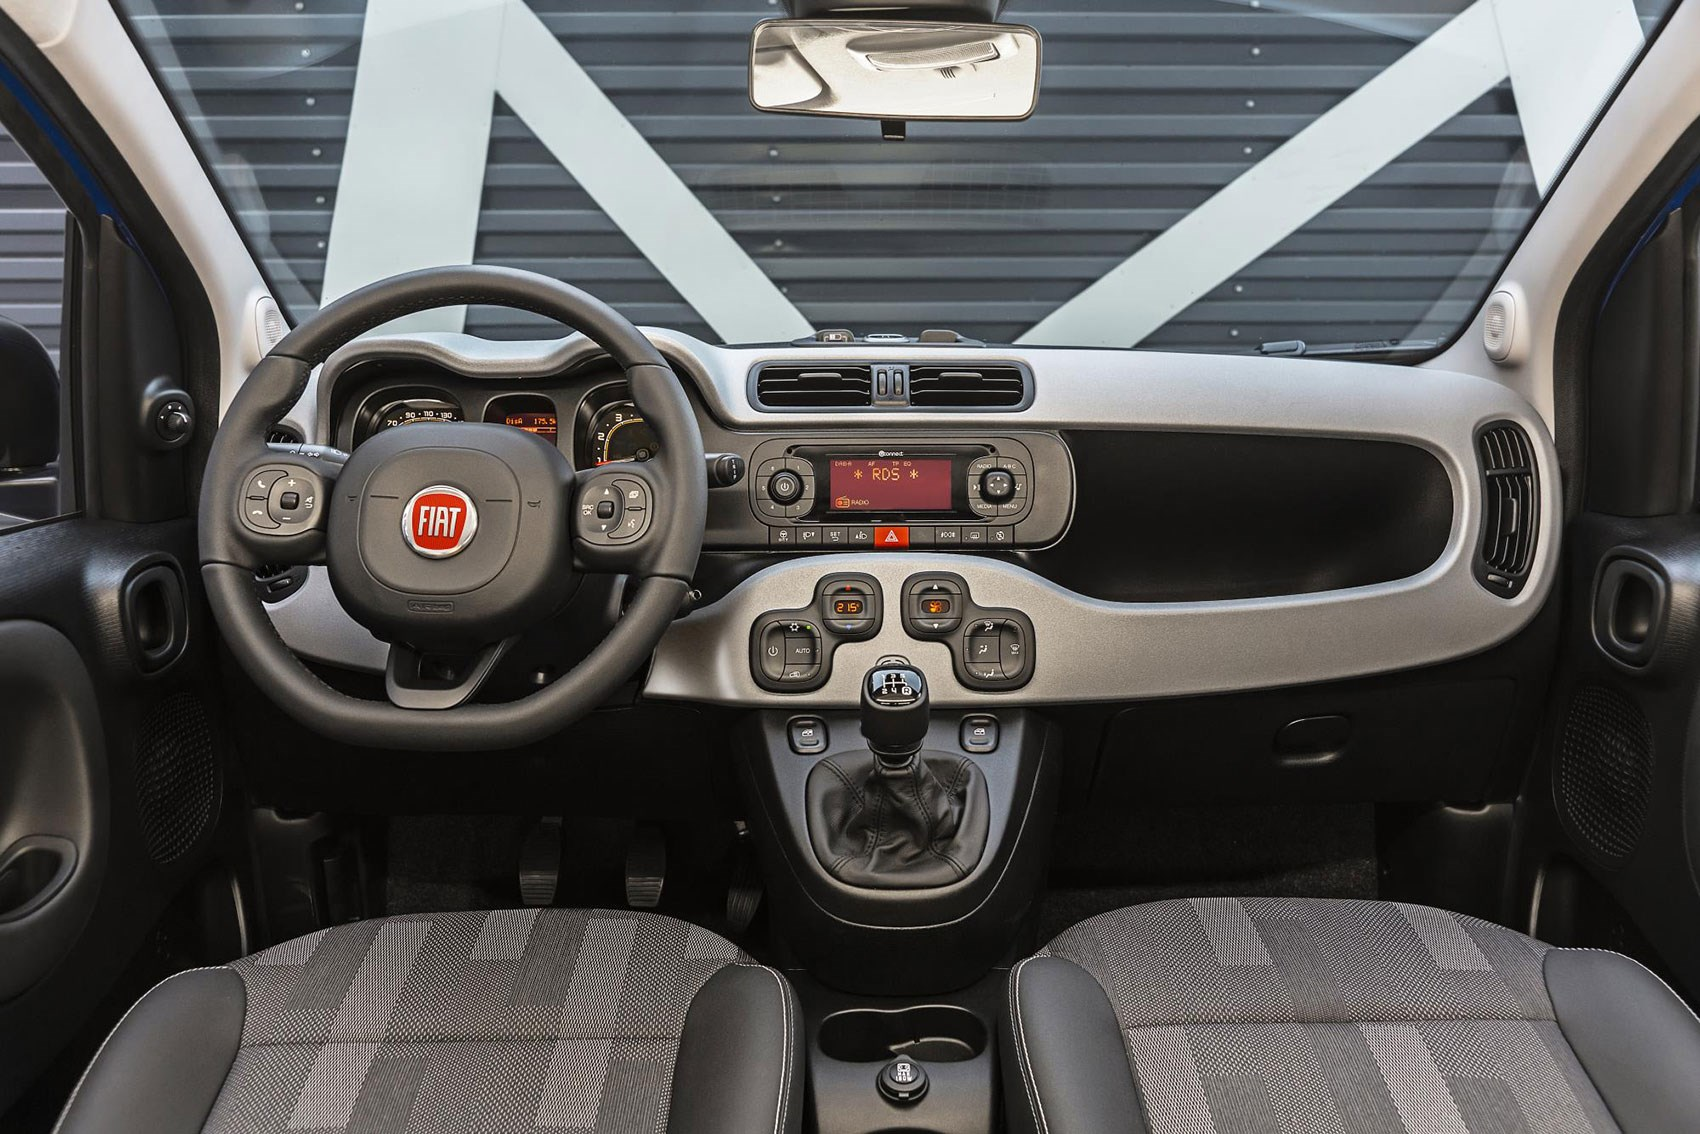 New 2017 Fiat Panda City Cross: news, specs, pictures by CAR Magazine